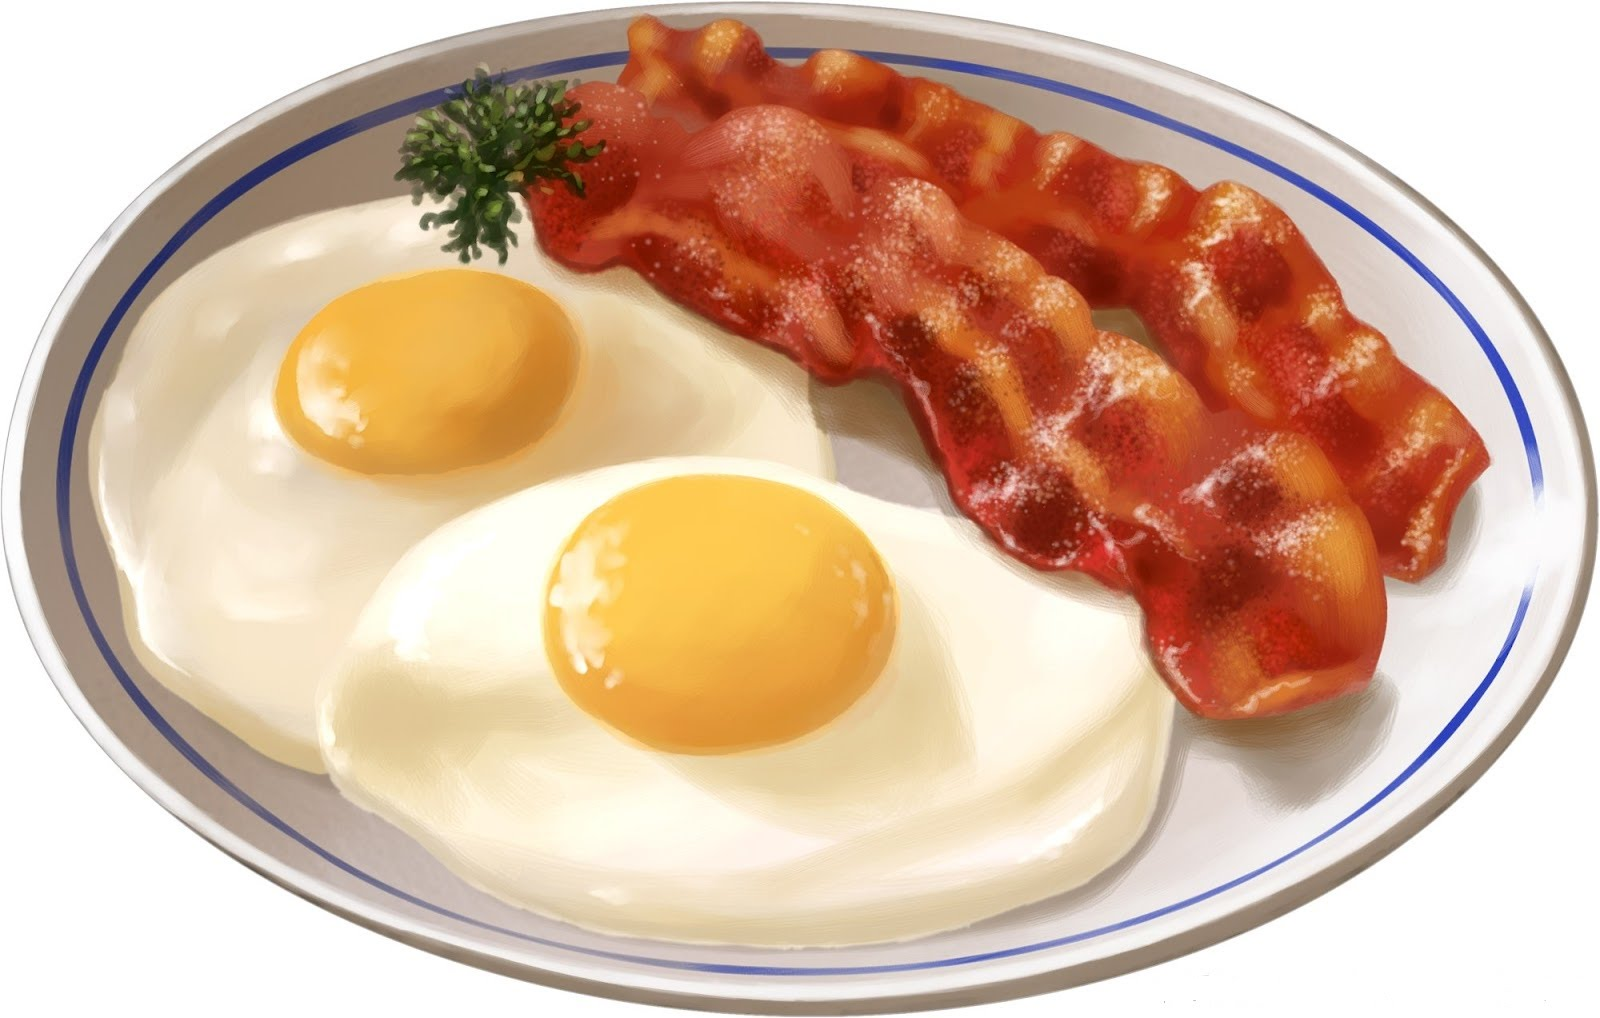 Bacon clipart cooked bacon. Dutch oven cooking eggs